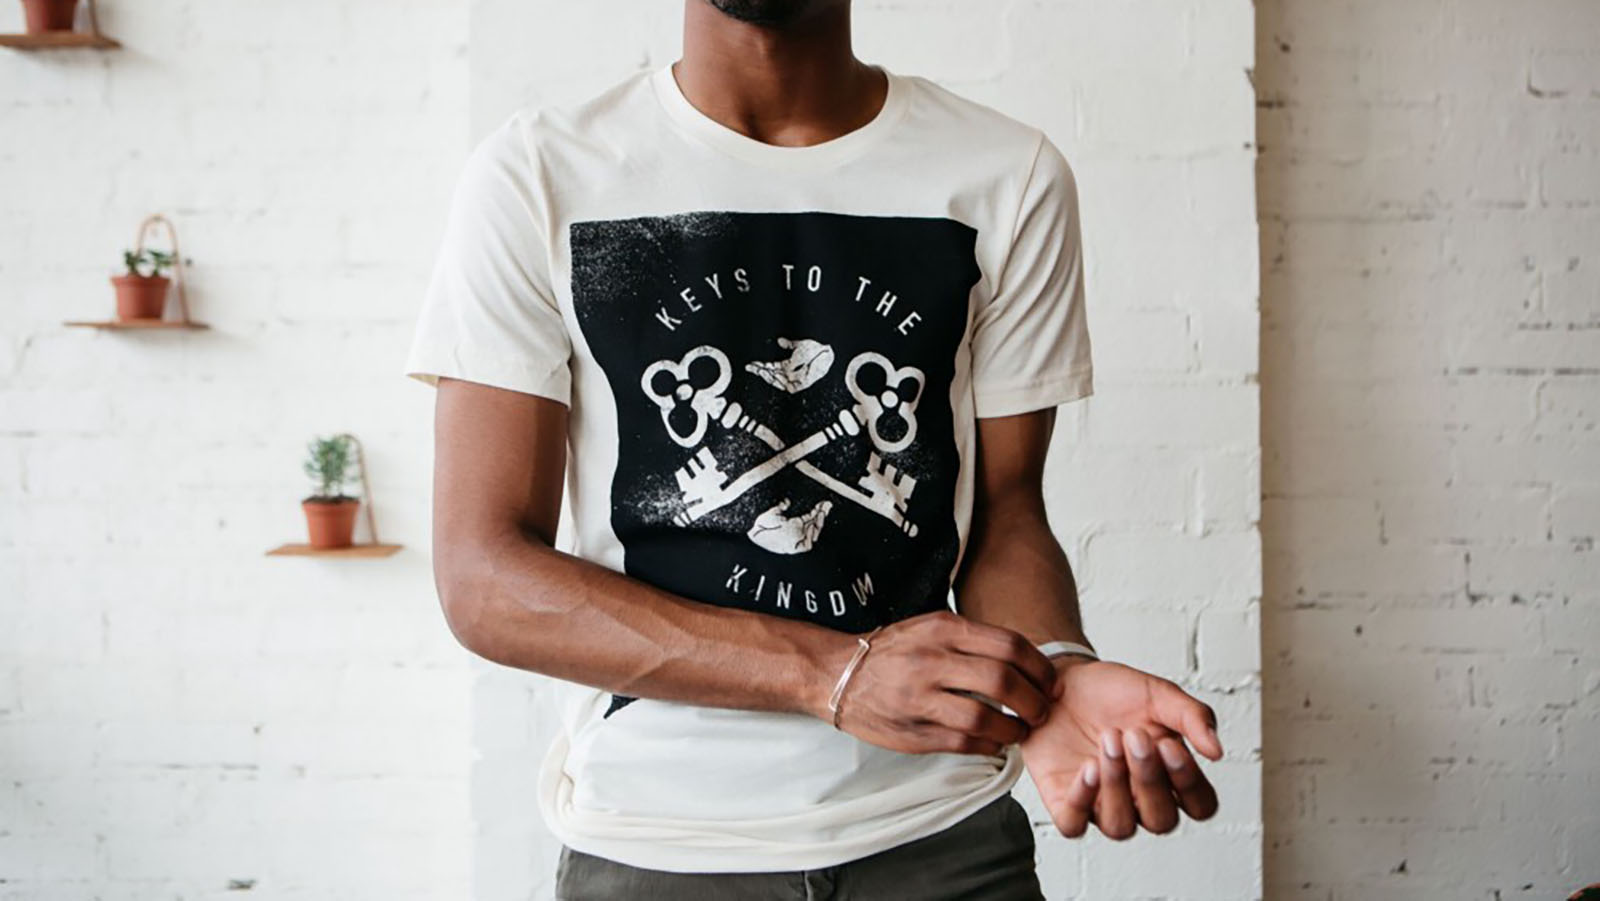 3 Easy Steps For Creating Vintage T-Shirts